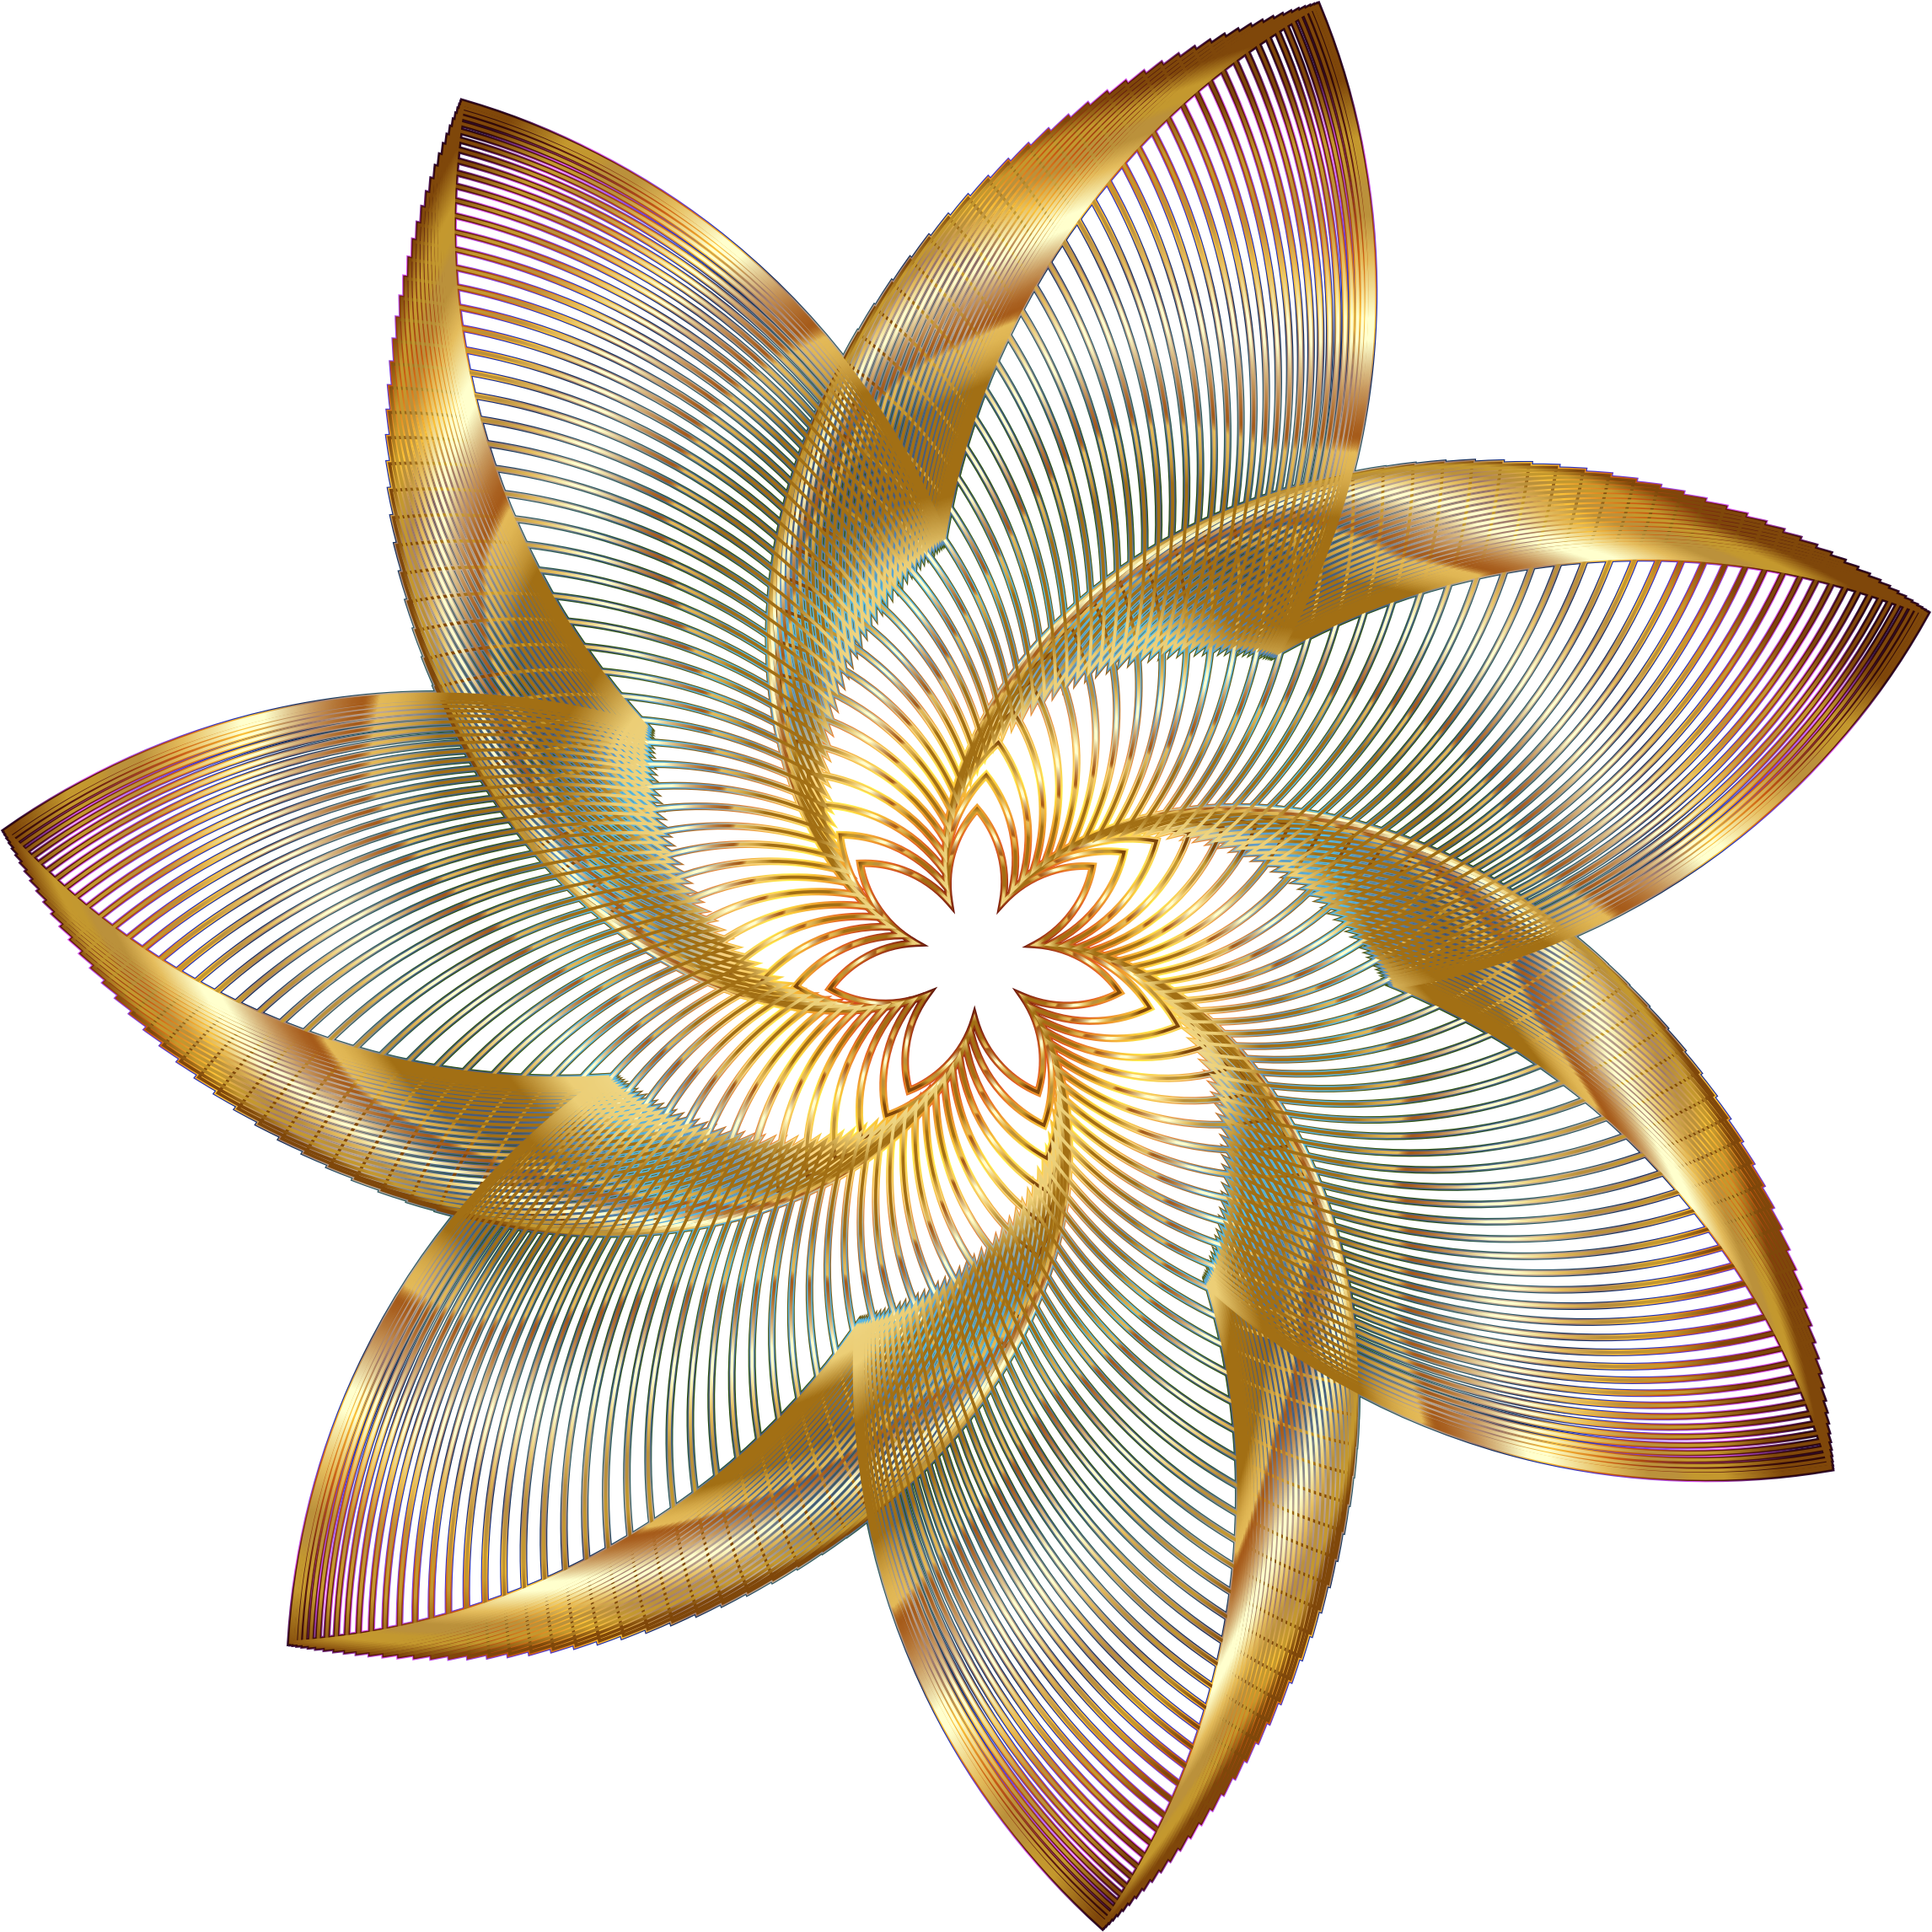 Prismatic Flower Line Art 2 No Background by GDJ